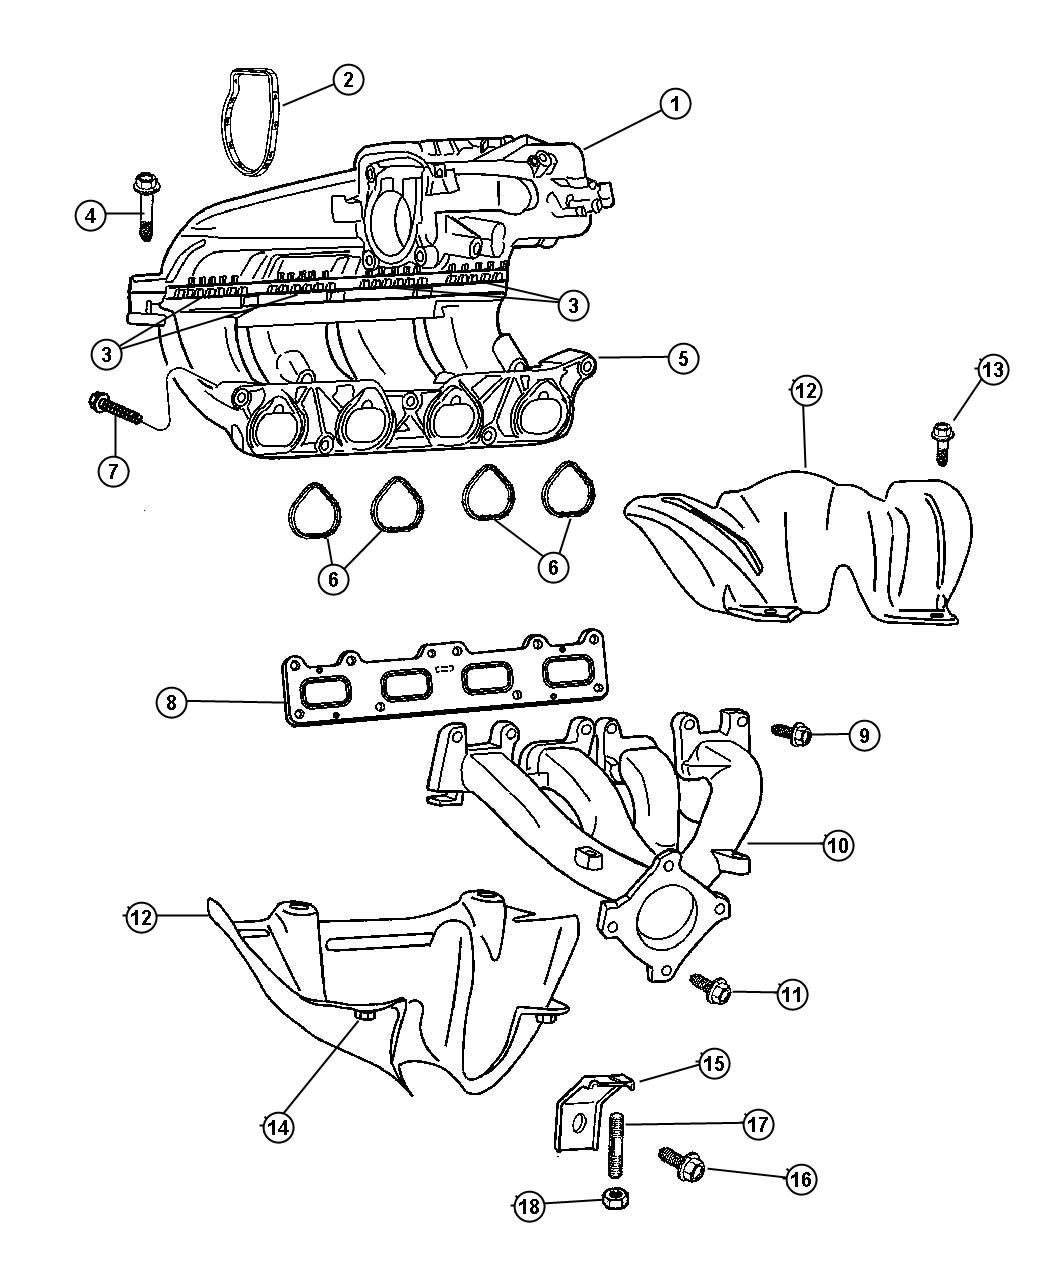 Service Manual Chrysler Pt Cruiser Intake Removal